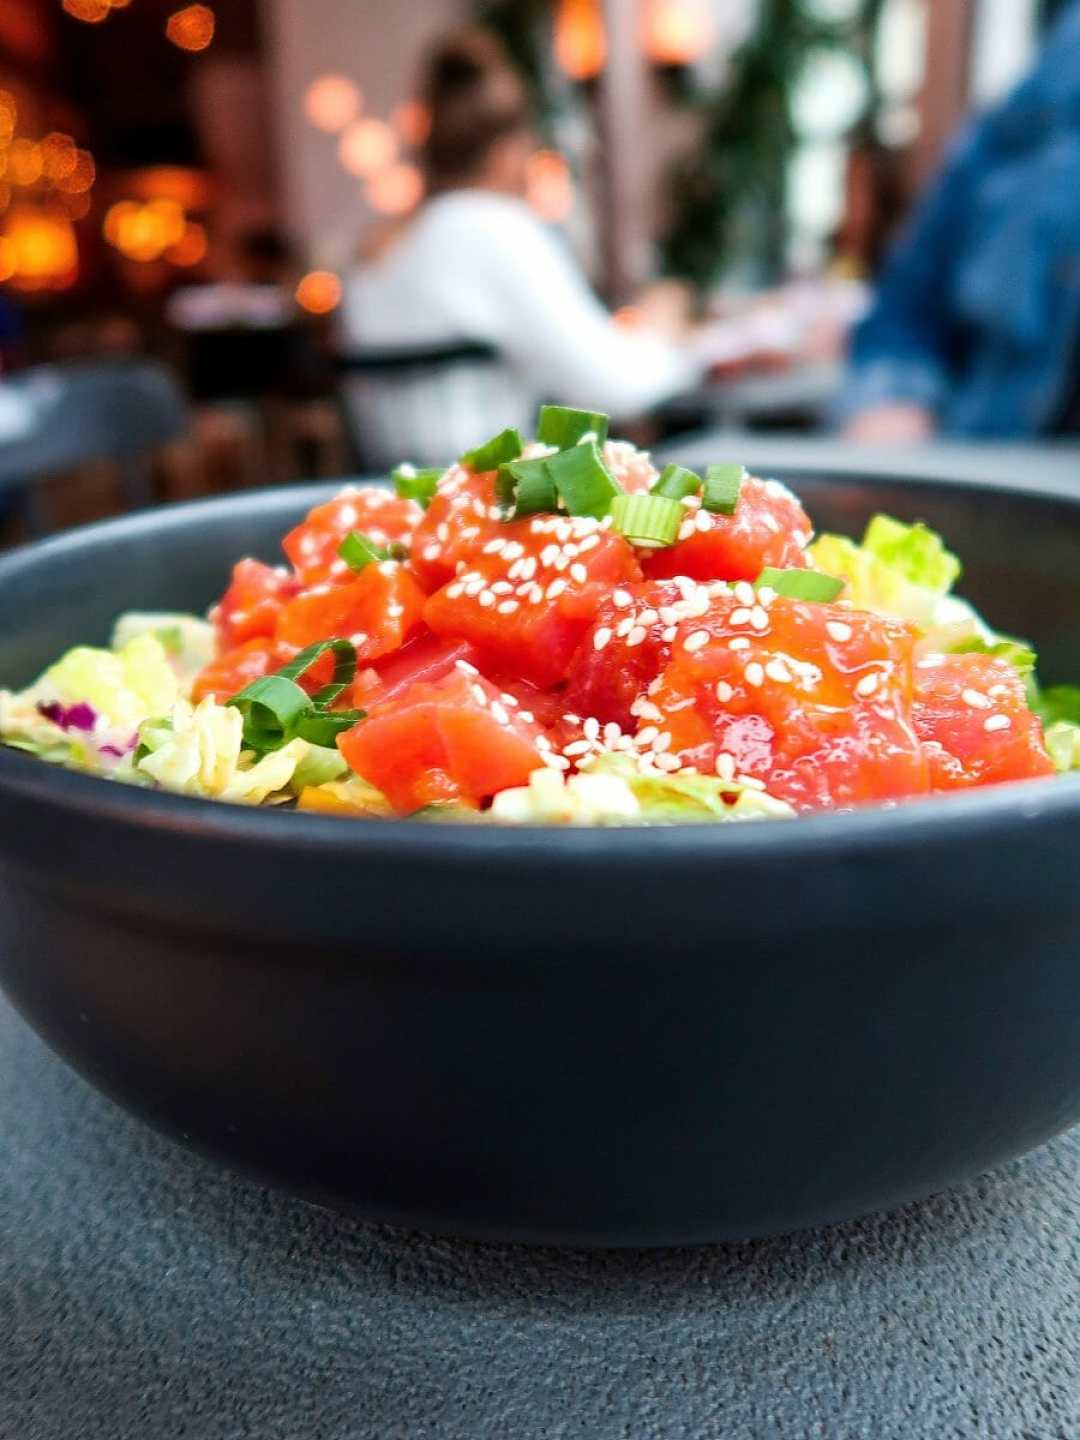 Poke Bowl In Louisville KY - Porch Kitchen & Bar